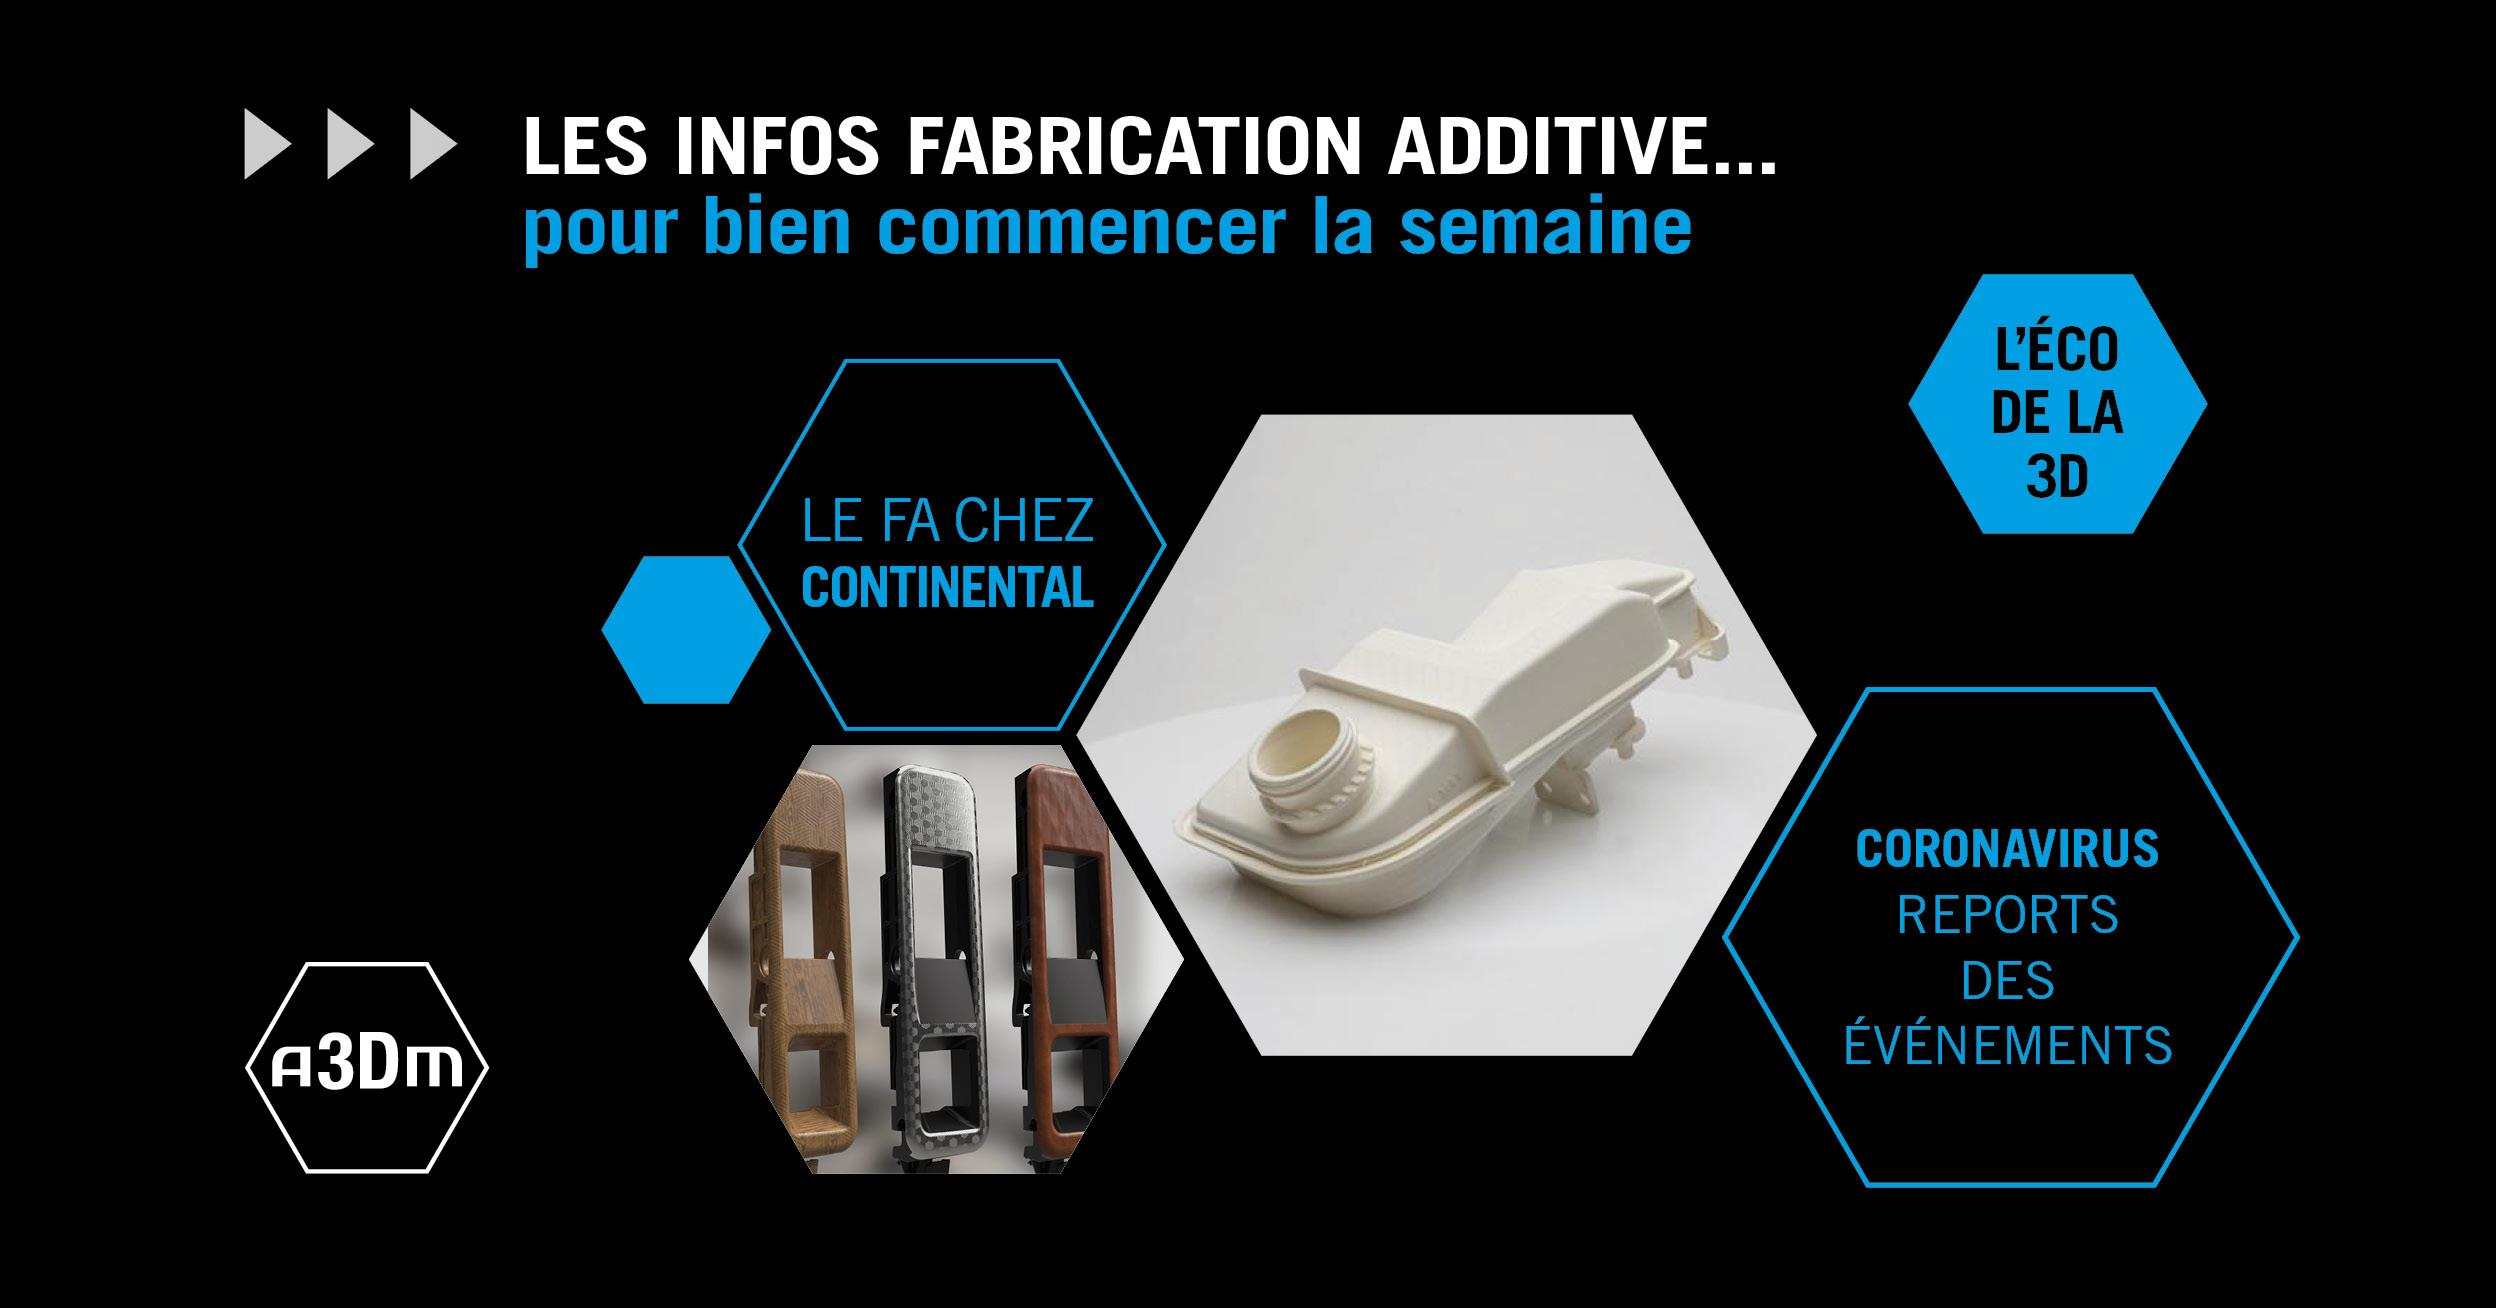 infos_fabrication_additive_semaine_35